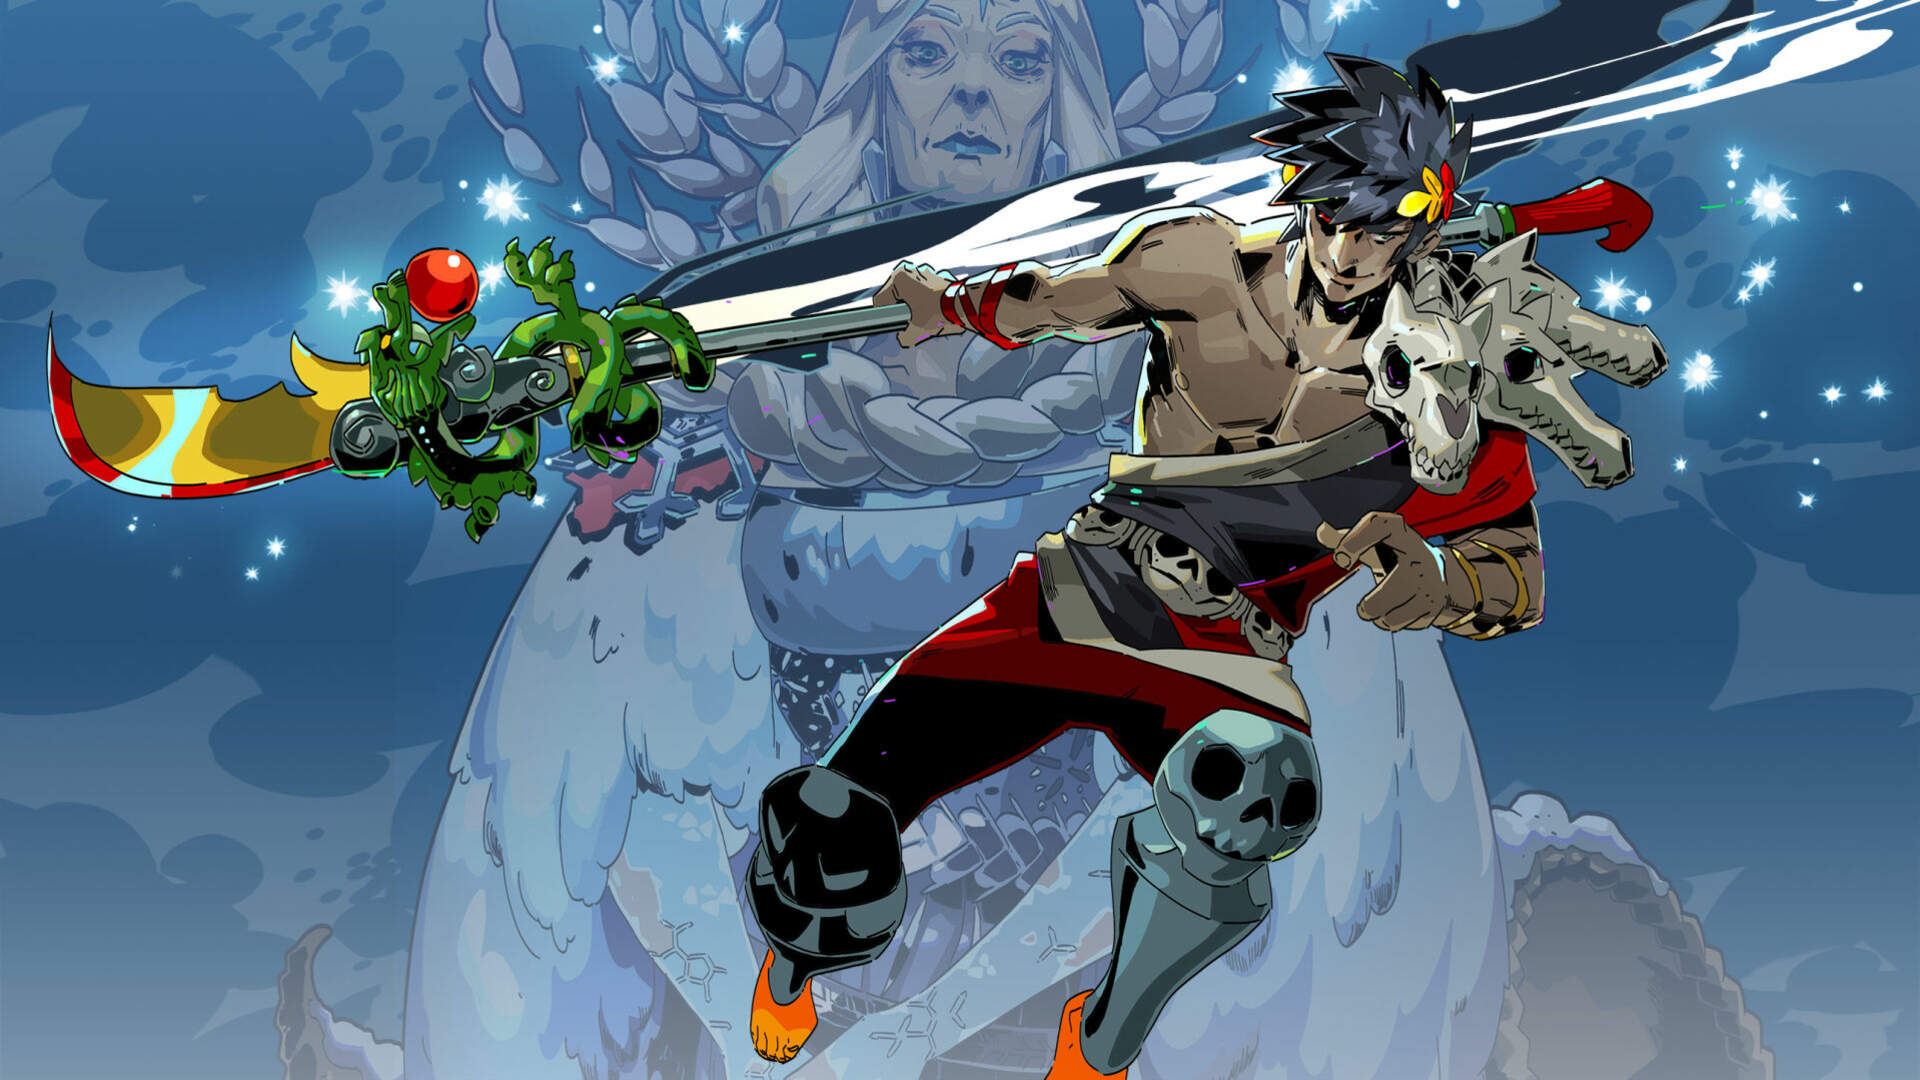 USG Game of the Month: Hades is Supergiant's Secret Blizzard Game